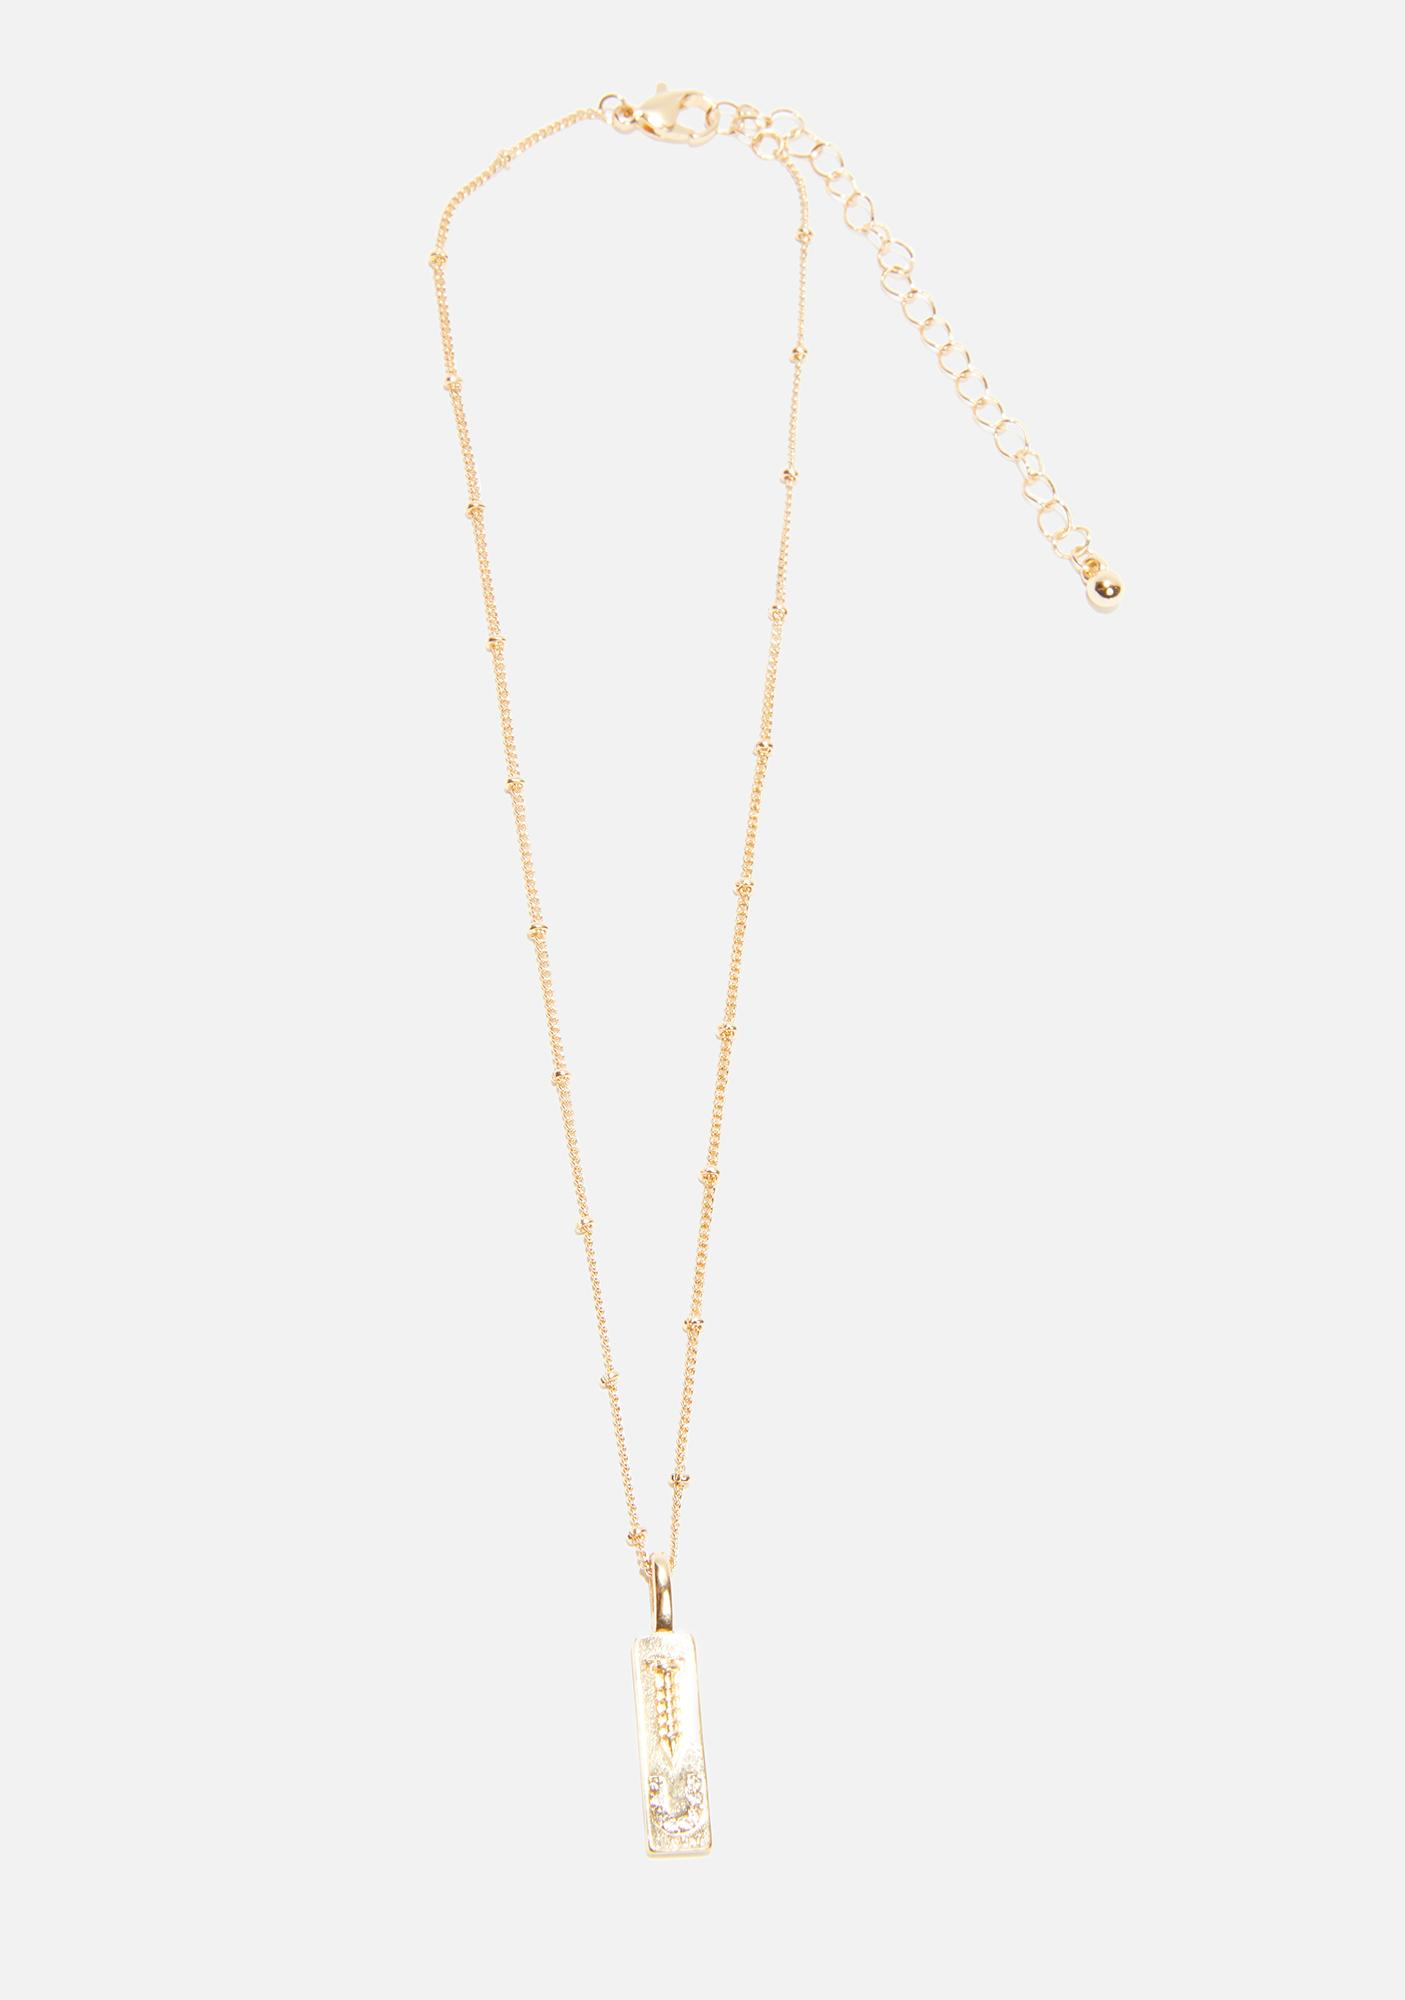 Get Lost Pendant Necklace